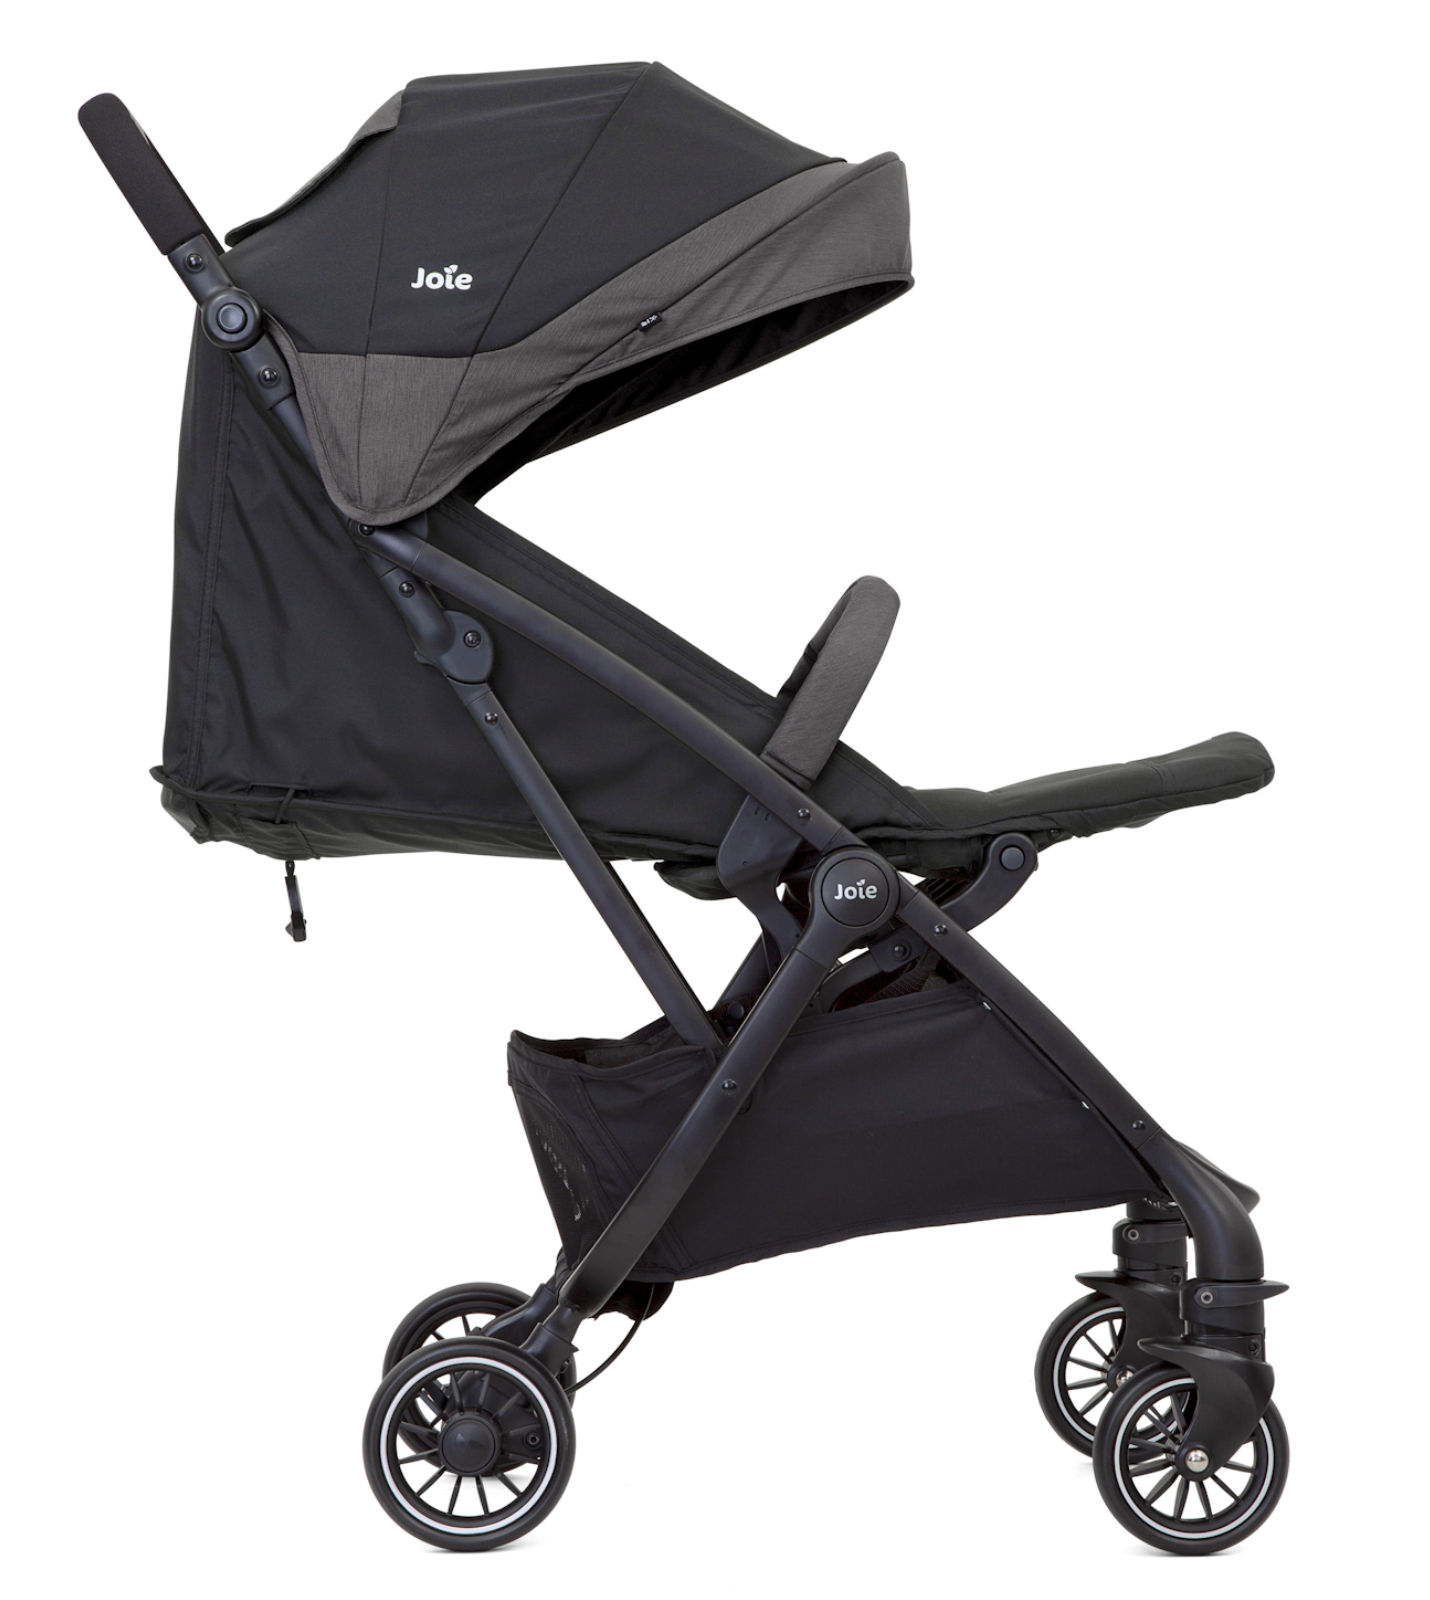 Joie Isofix Base Gemm Joie Mothercare Exclusive Tourist Gemm Travel System